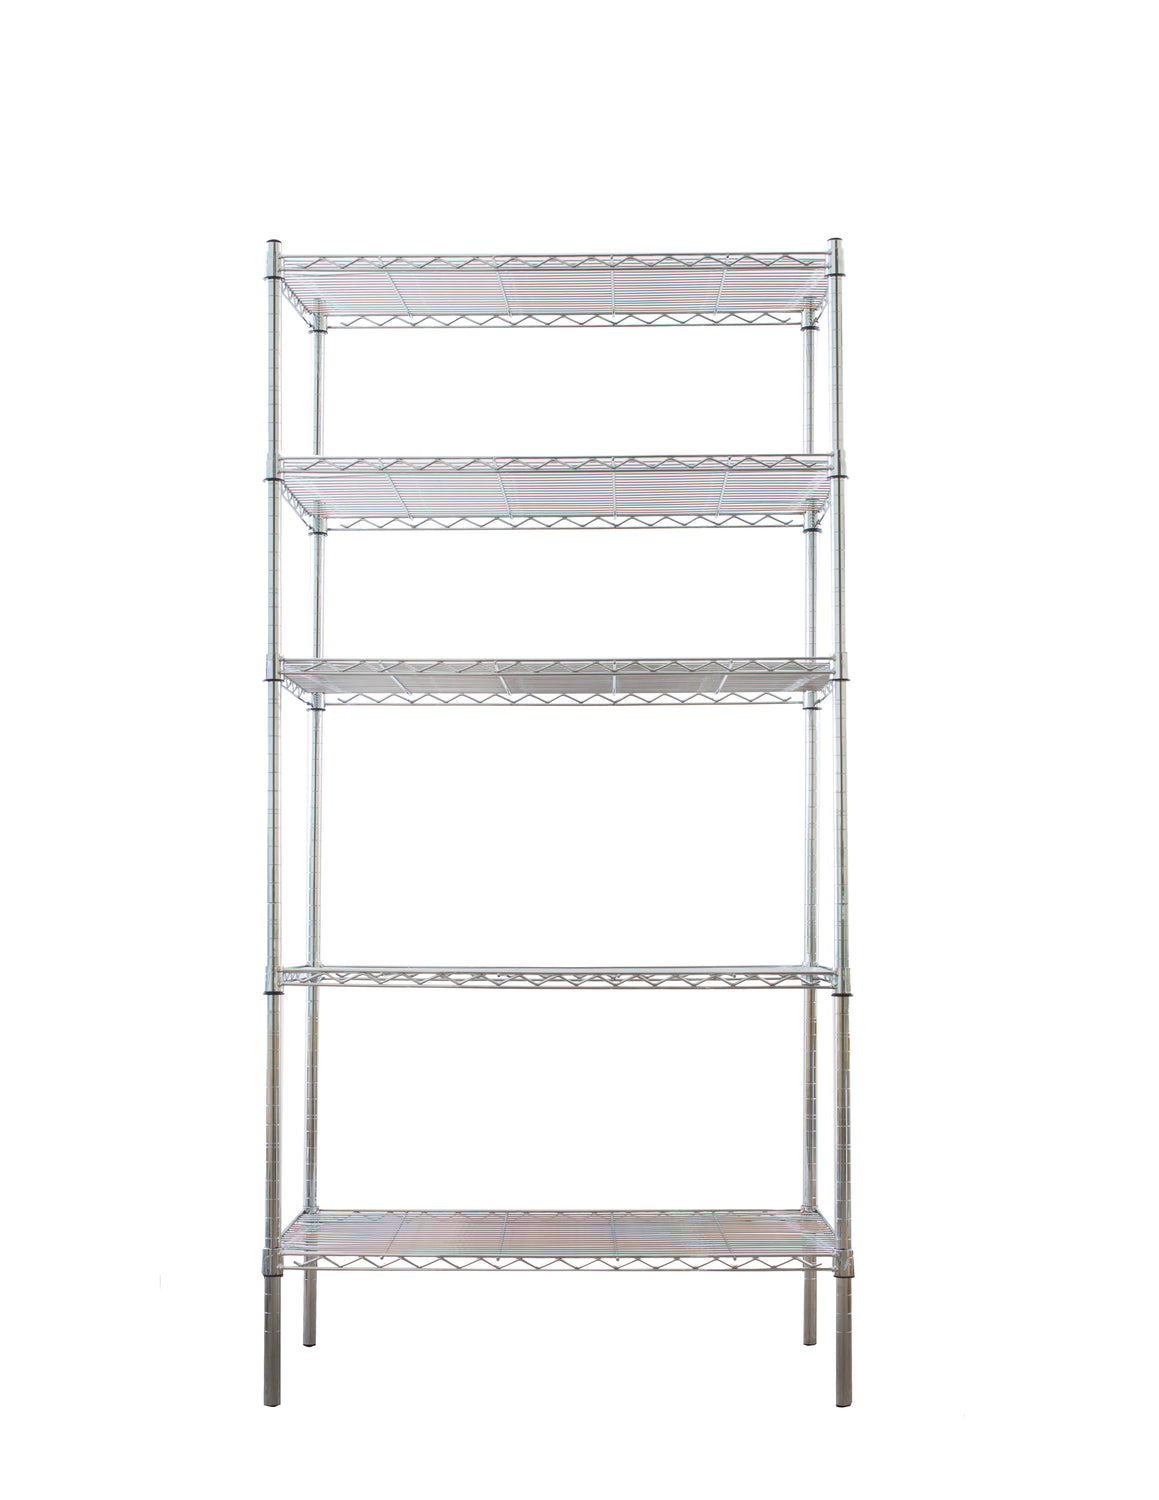 Chrome coated mild steel shelf - extra large